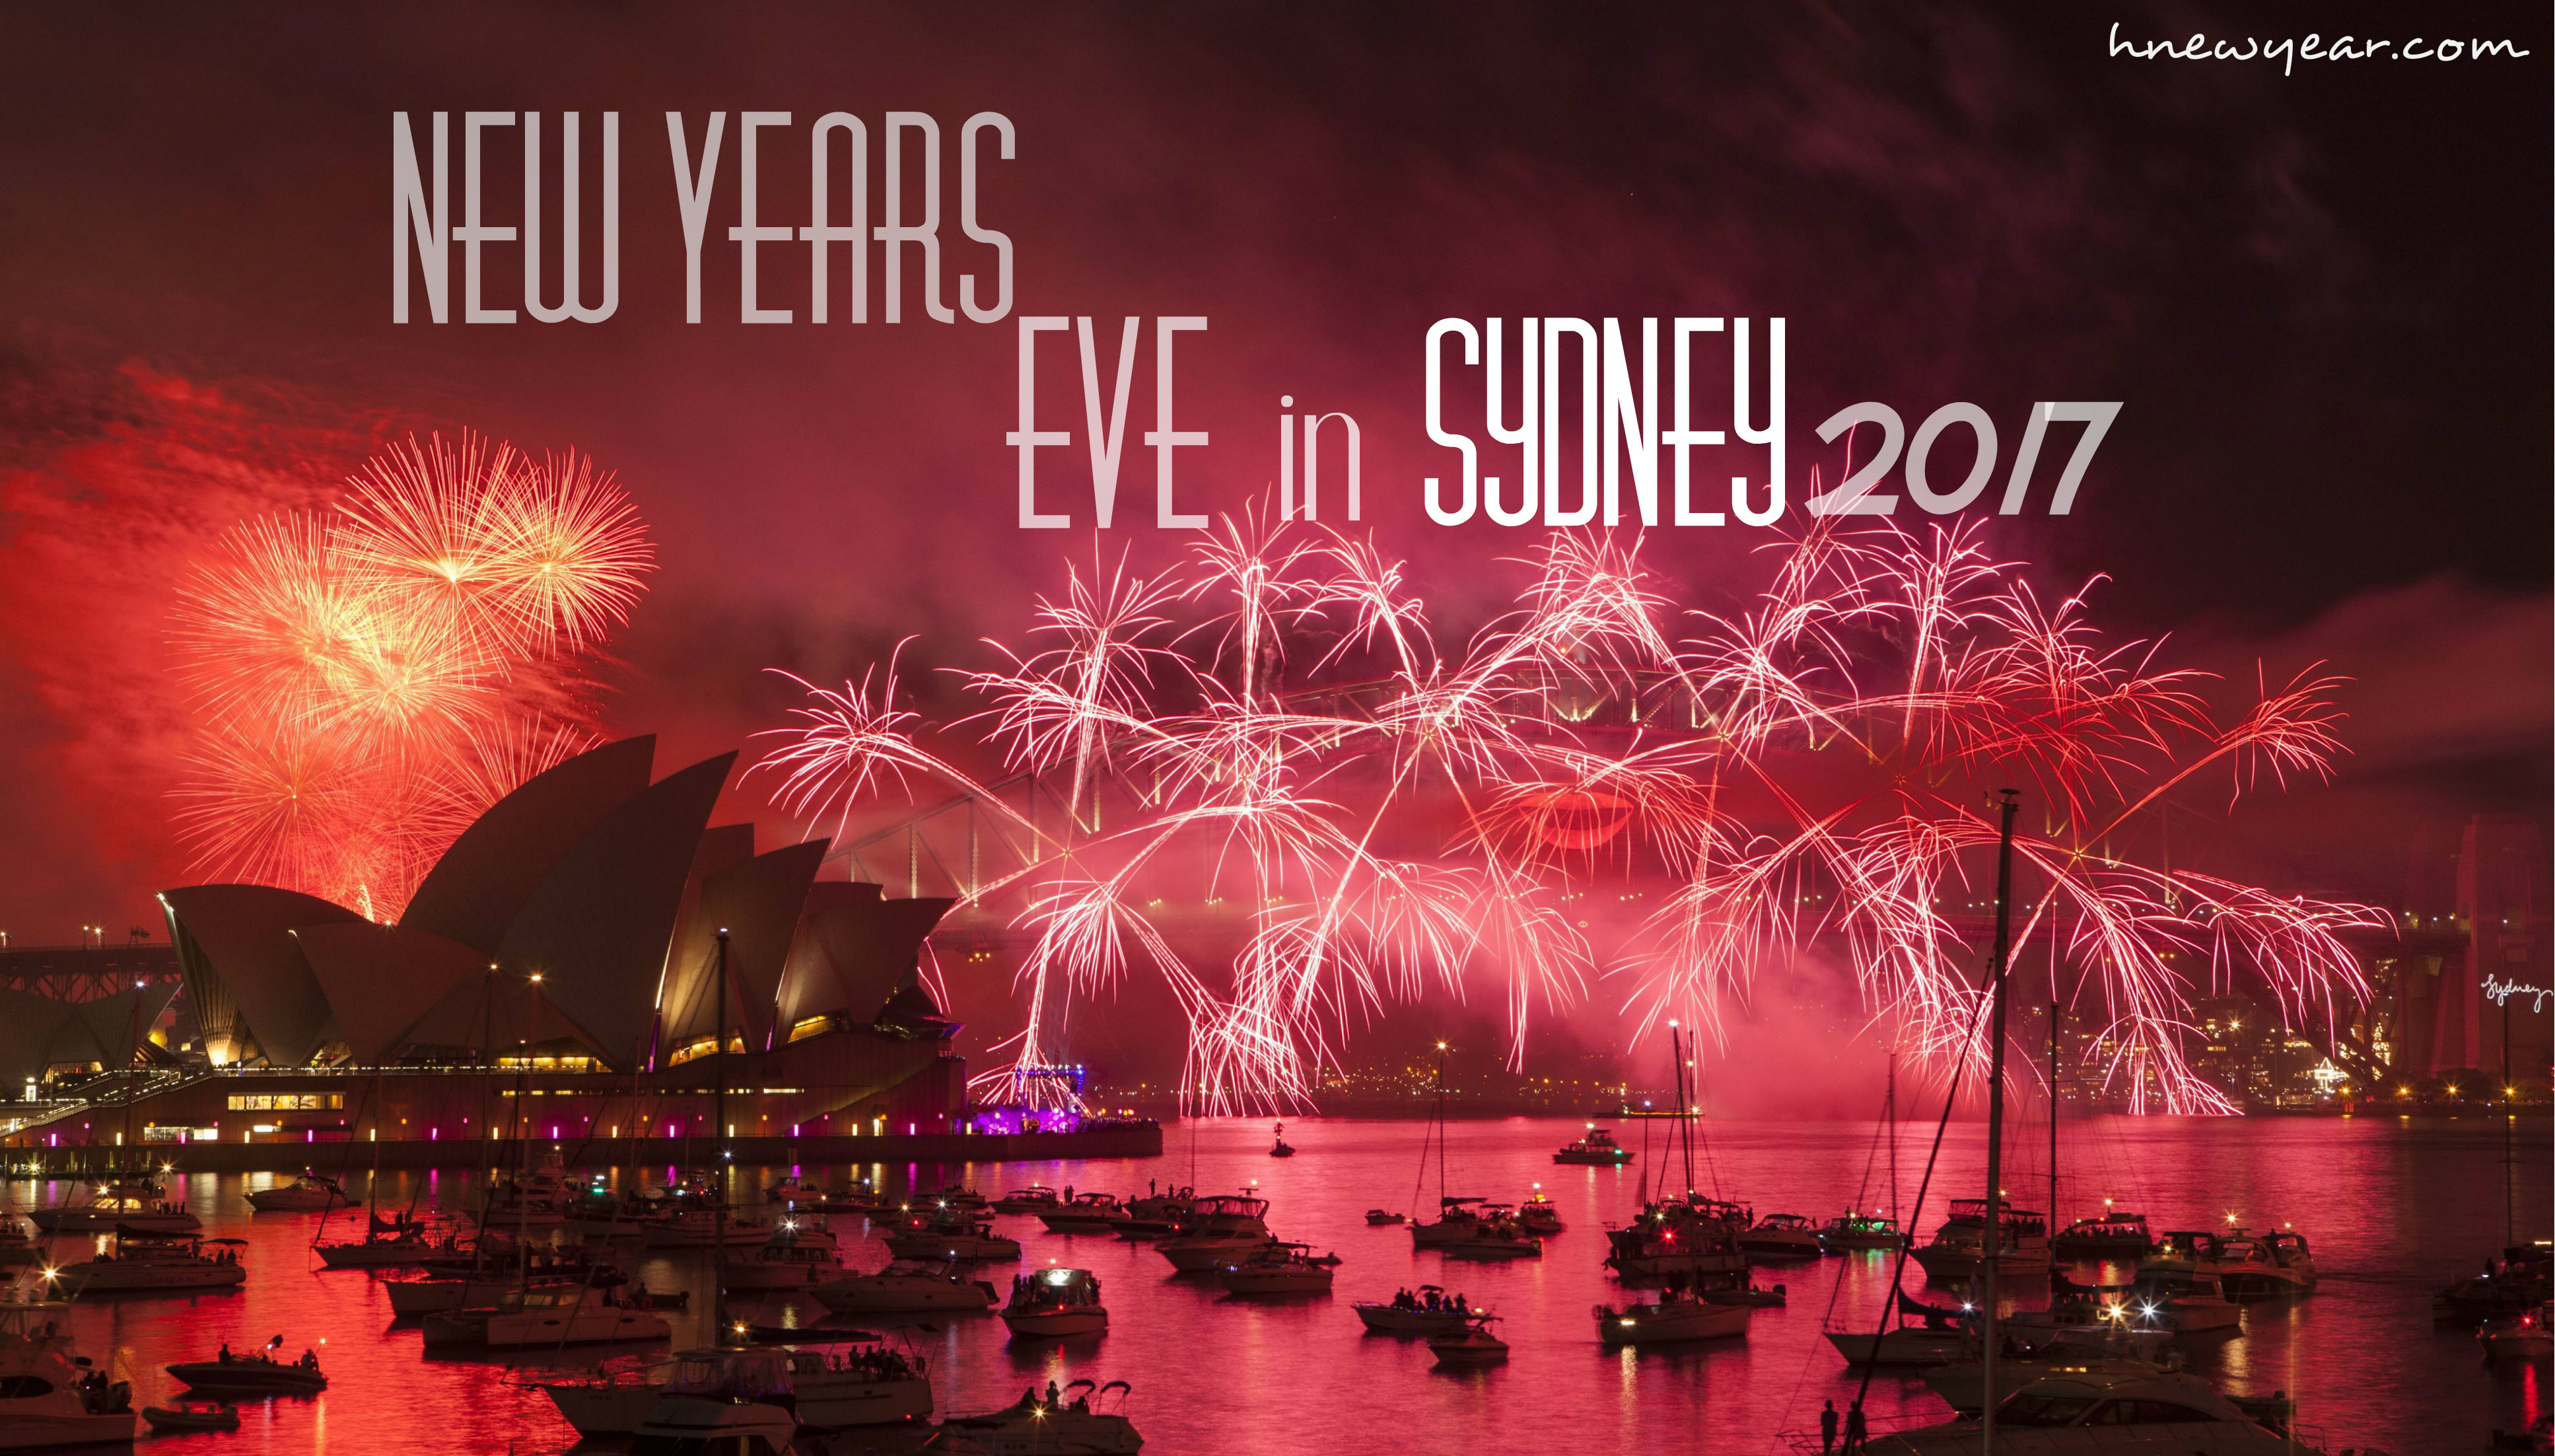 New Years Eve in Sydney 2019 Parties, Festival